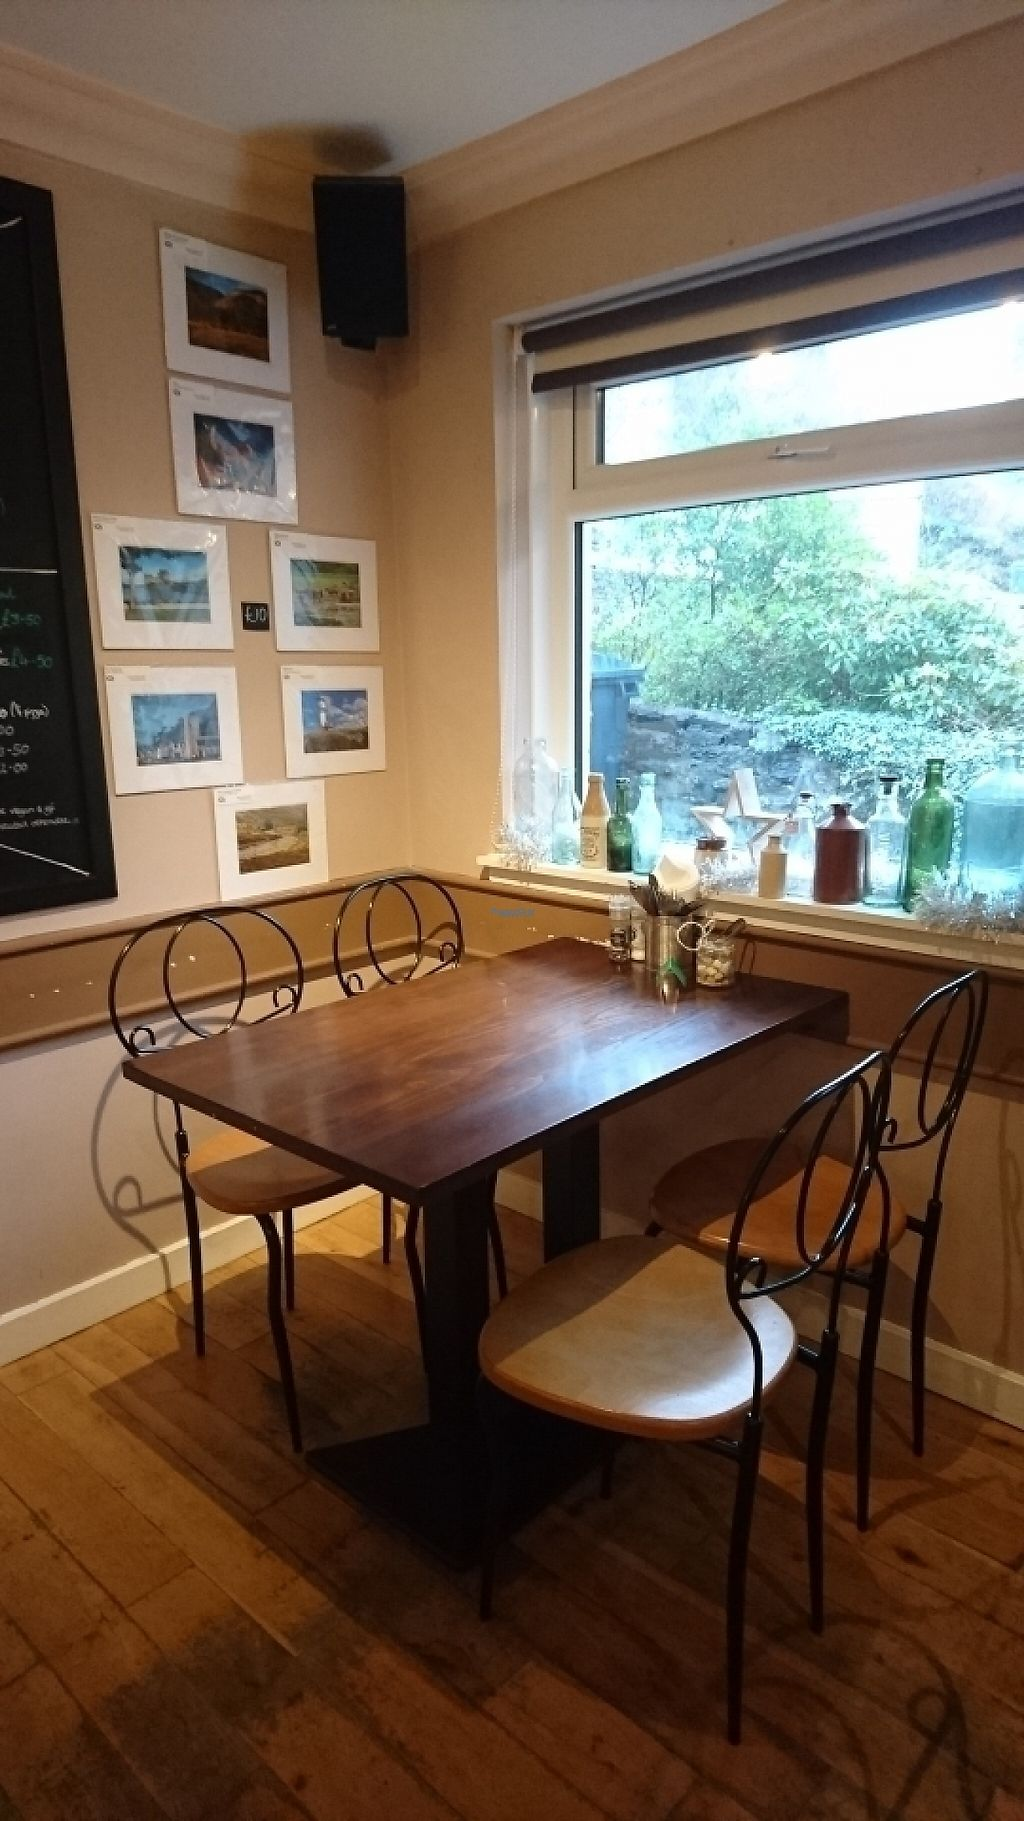 """Photo of The Little Potting Shed Cafe - temporarily closed  by <a href=""""/members/profile/Ursa_minor"""">Ursa_minor</a> <br/>interior  <br/> March 11, 2017  - <a href='/contact/abuse/image/62768/235220'>Report</a>"""